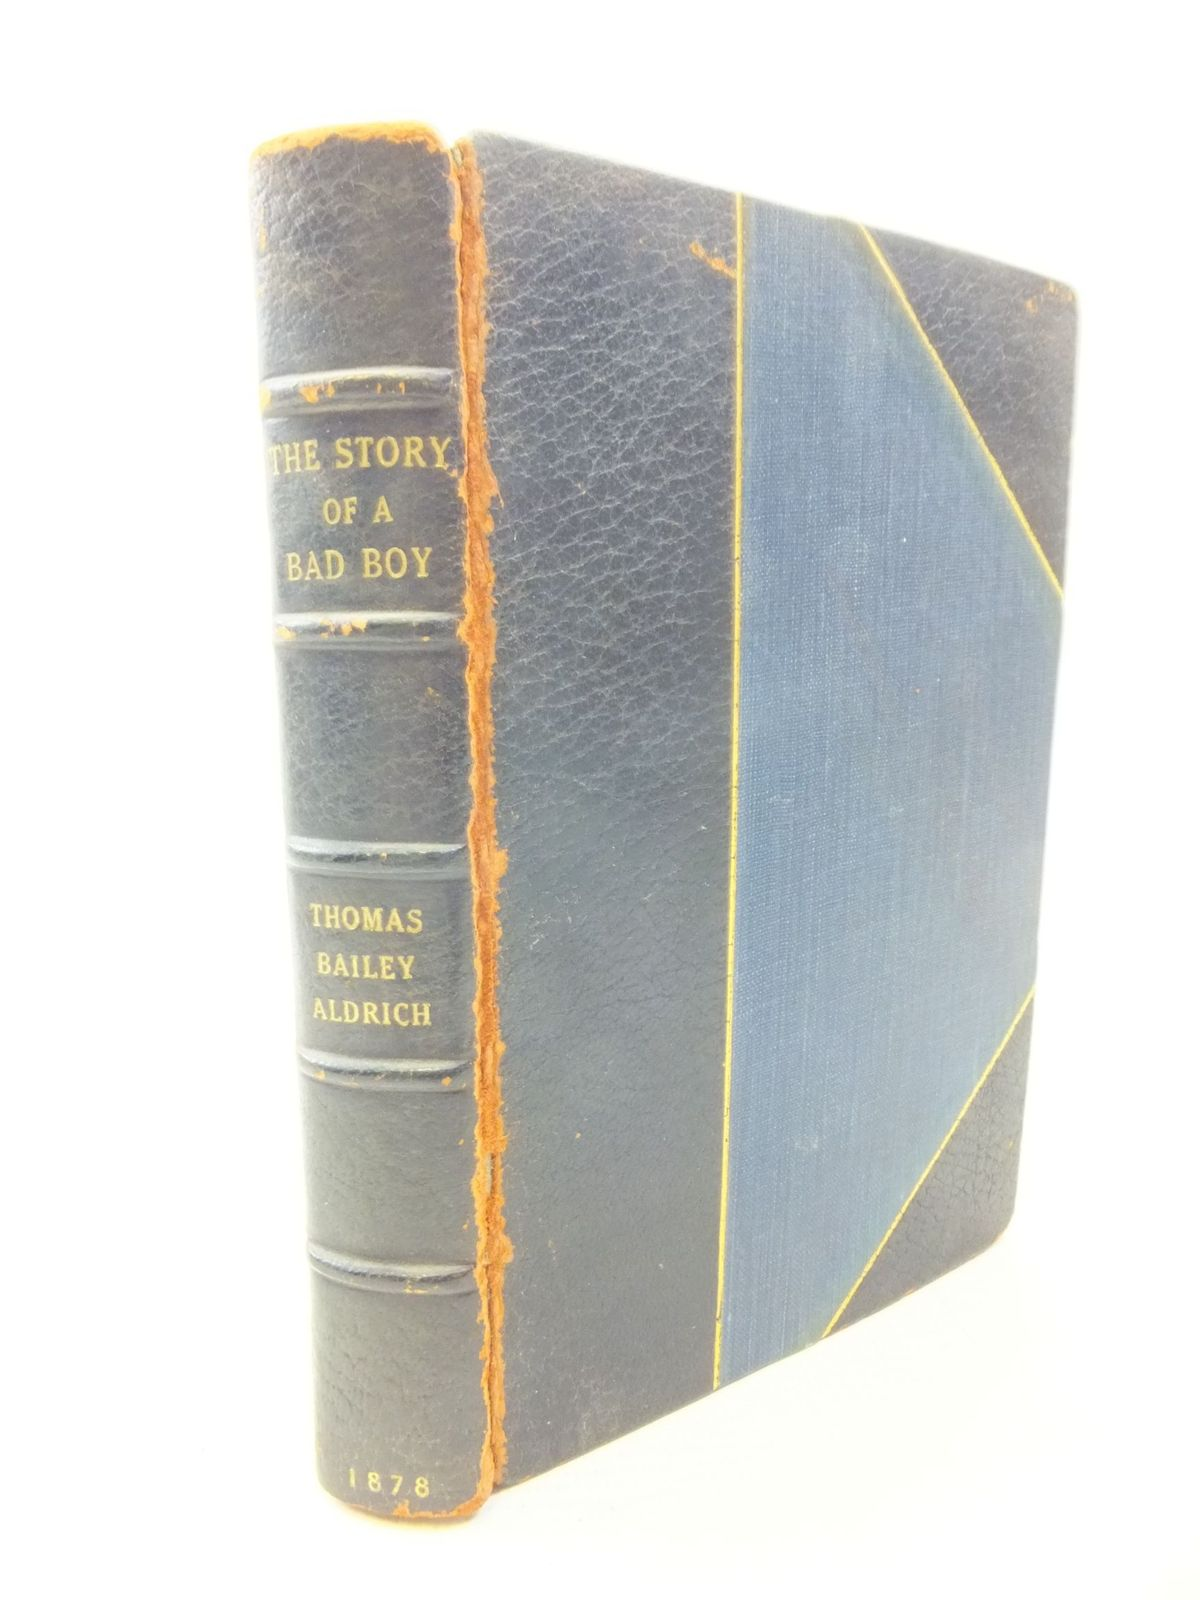 Photo of THE STORY OF A BAD BOY written by Aldrich, Thomas Bailey published by Houghton, Osgood And Company (STOCK CODE: 2114379)  for sale by Stella & Rose's Books